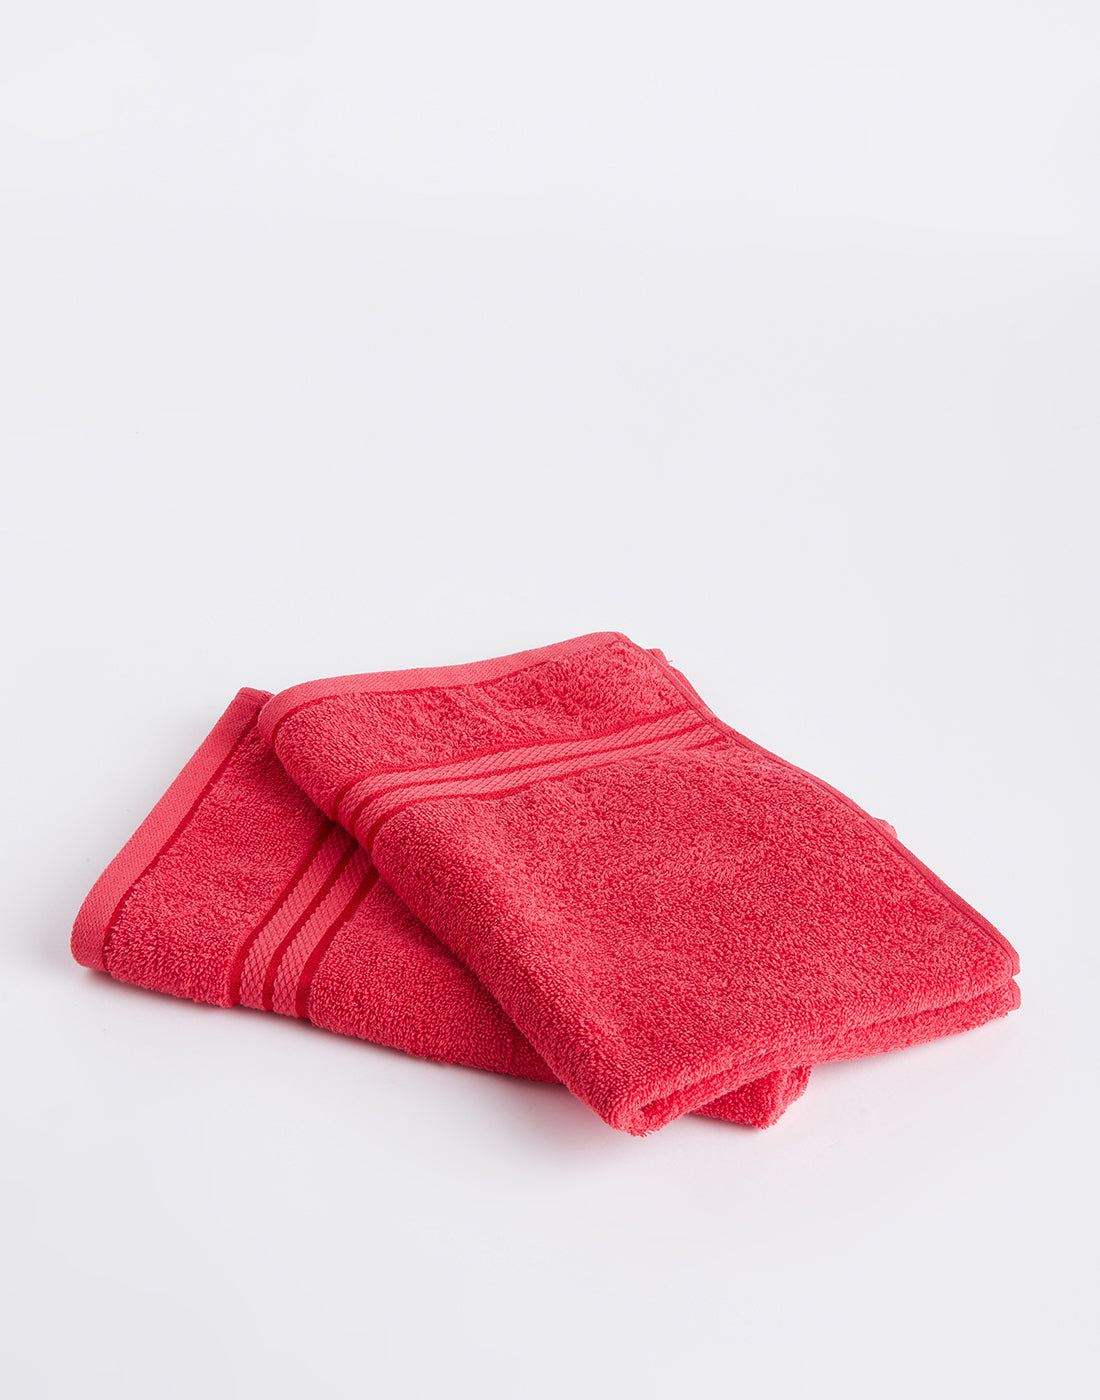 Octave Miami Red Set of 2 Cotton Hand Towels